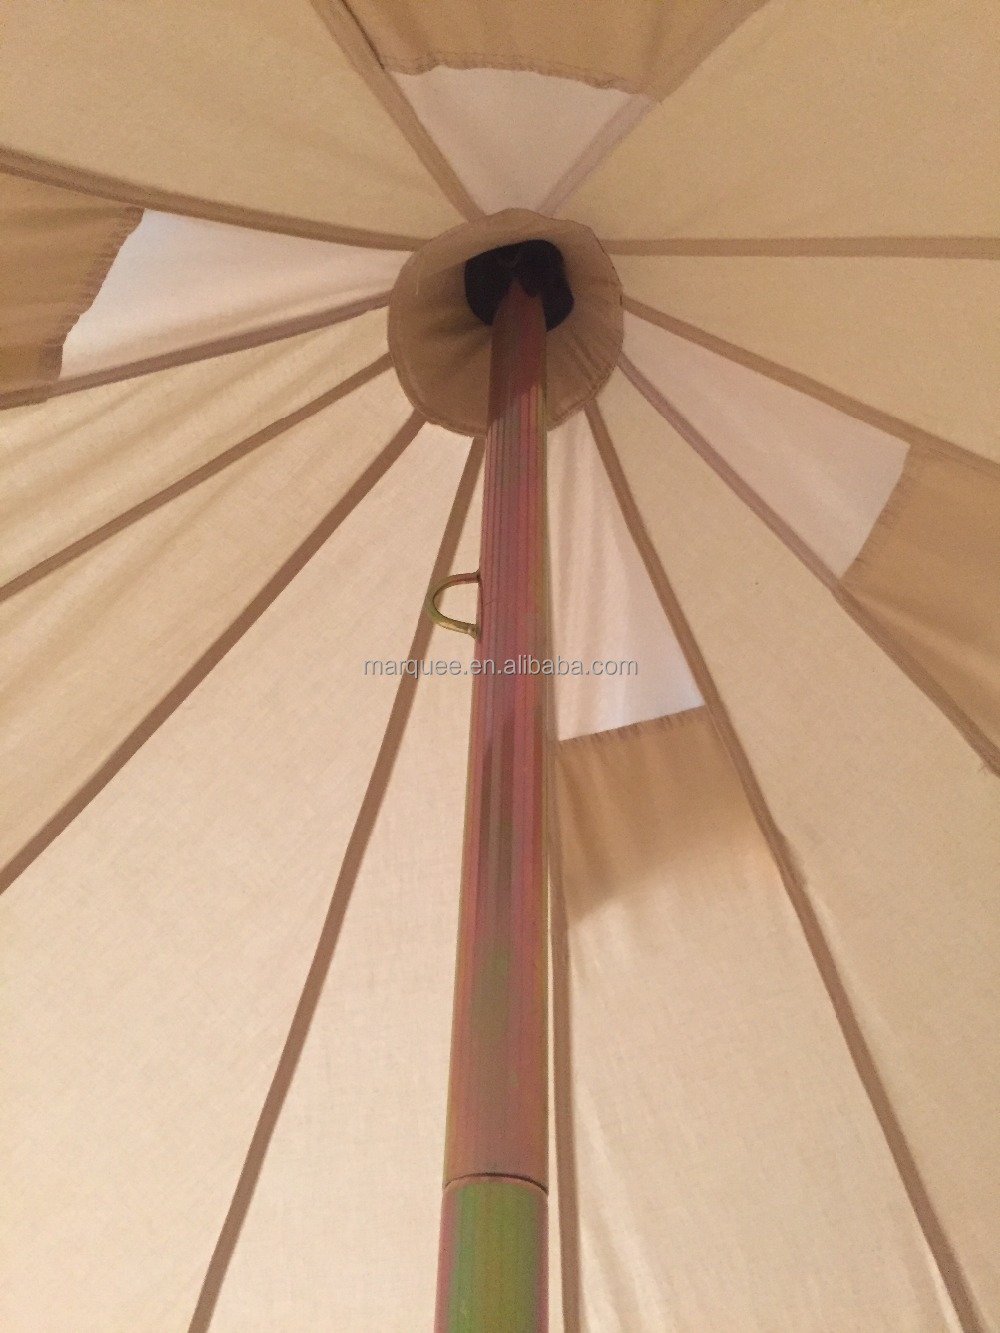 5M Bell Tent With ZIG